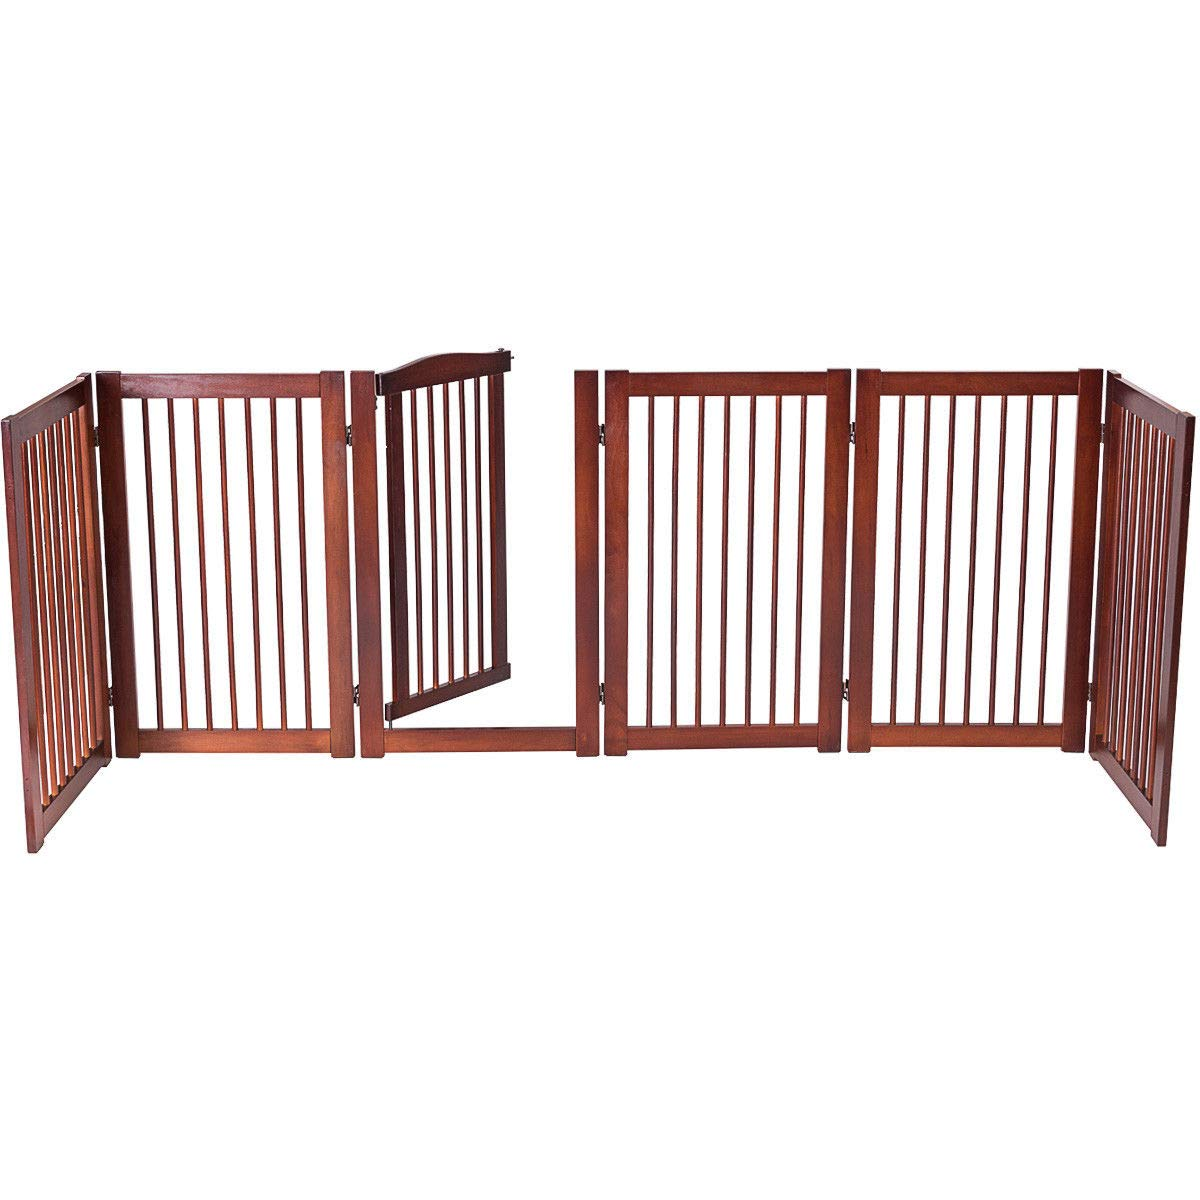 Giantex 36'' Configurable Folding Free Standing Panel Wood Pet Dog Safety Fence w/Gate (133'' W) by Giantex (Image #4)